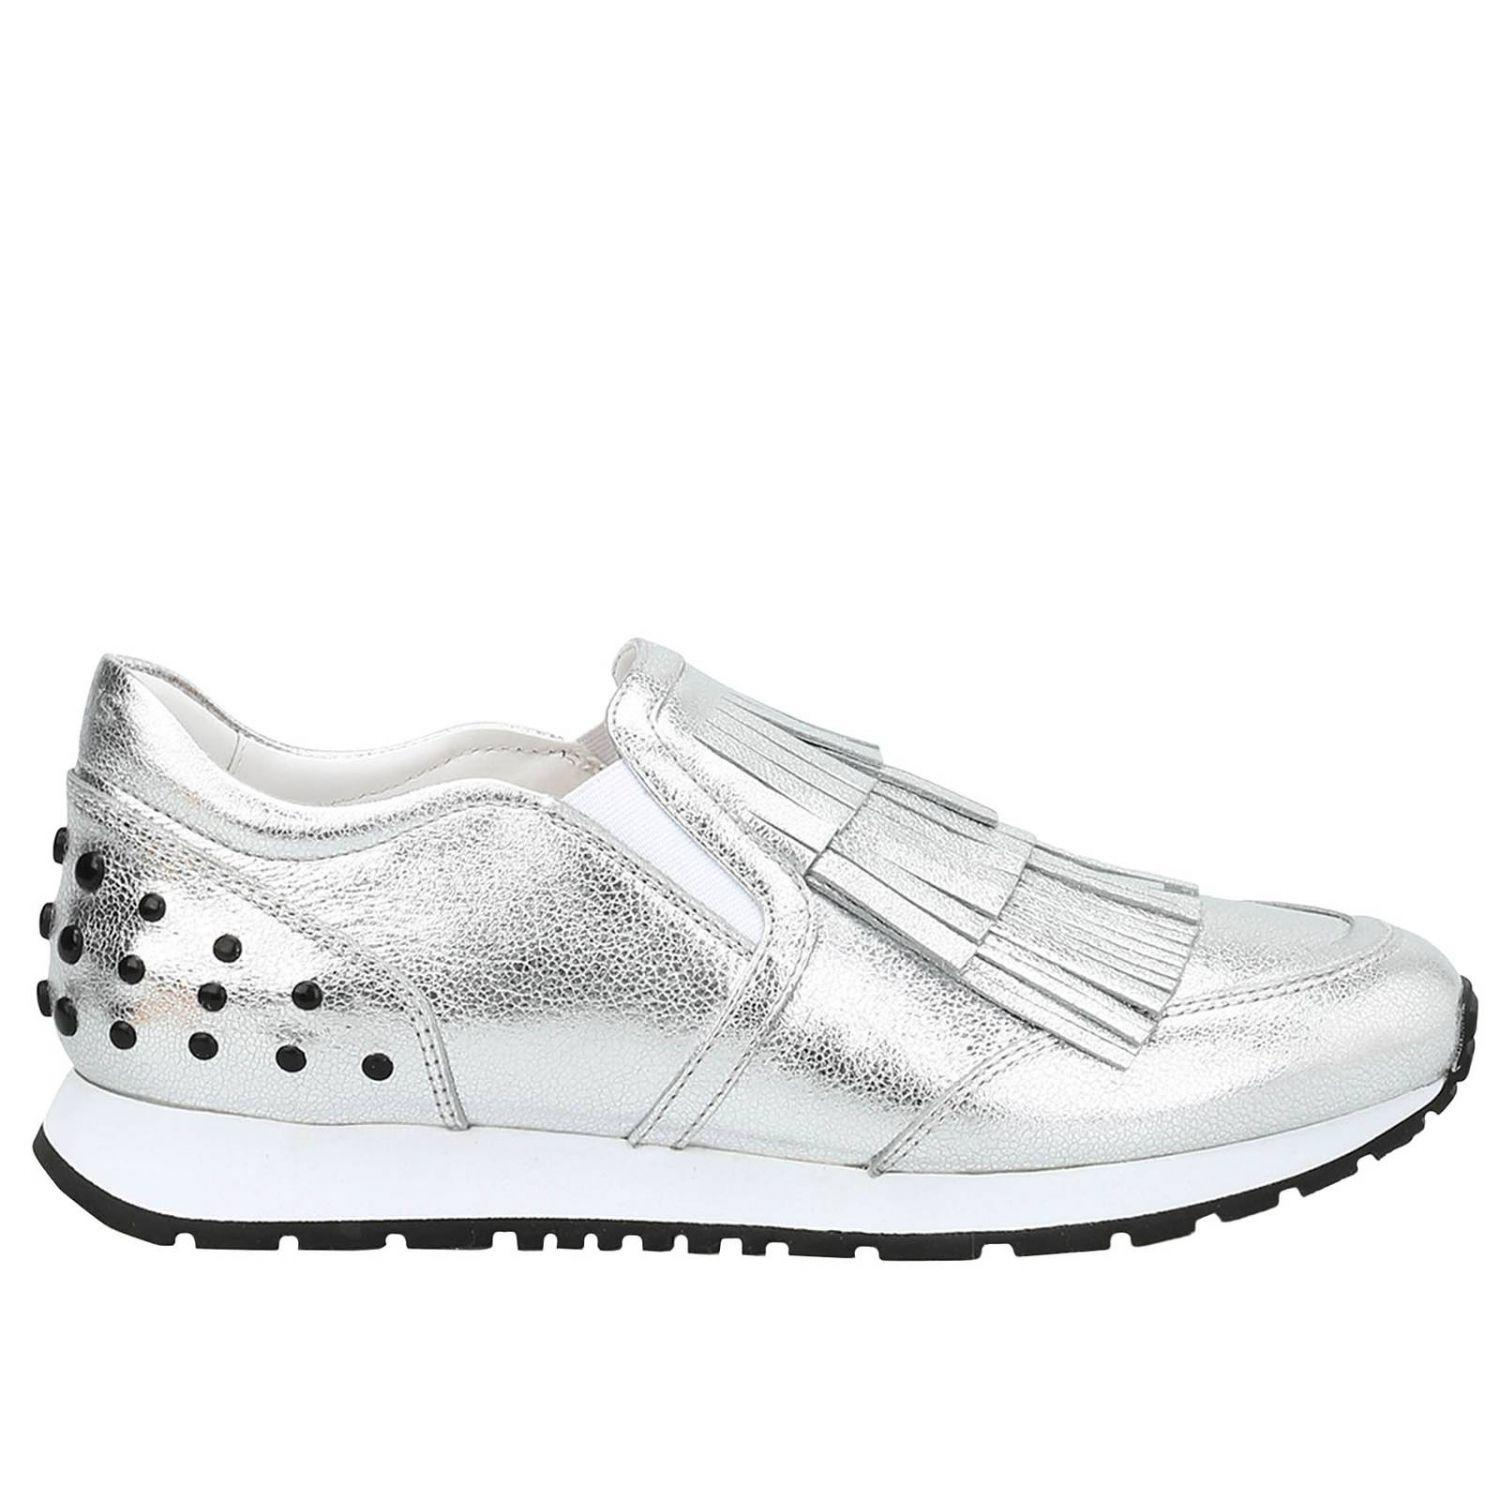 Freewaters Women S Shoes